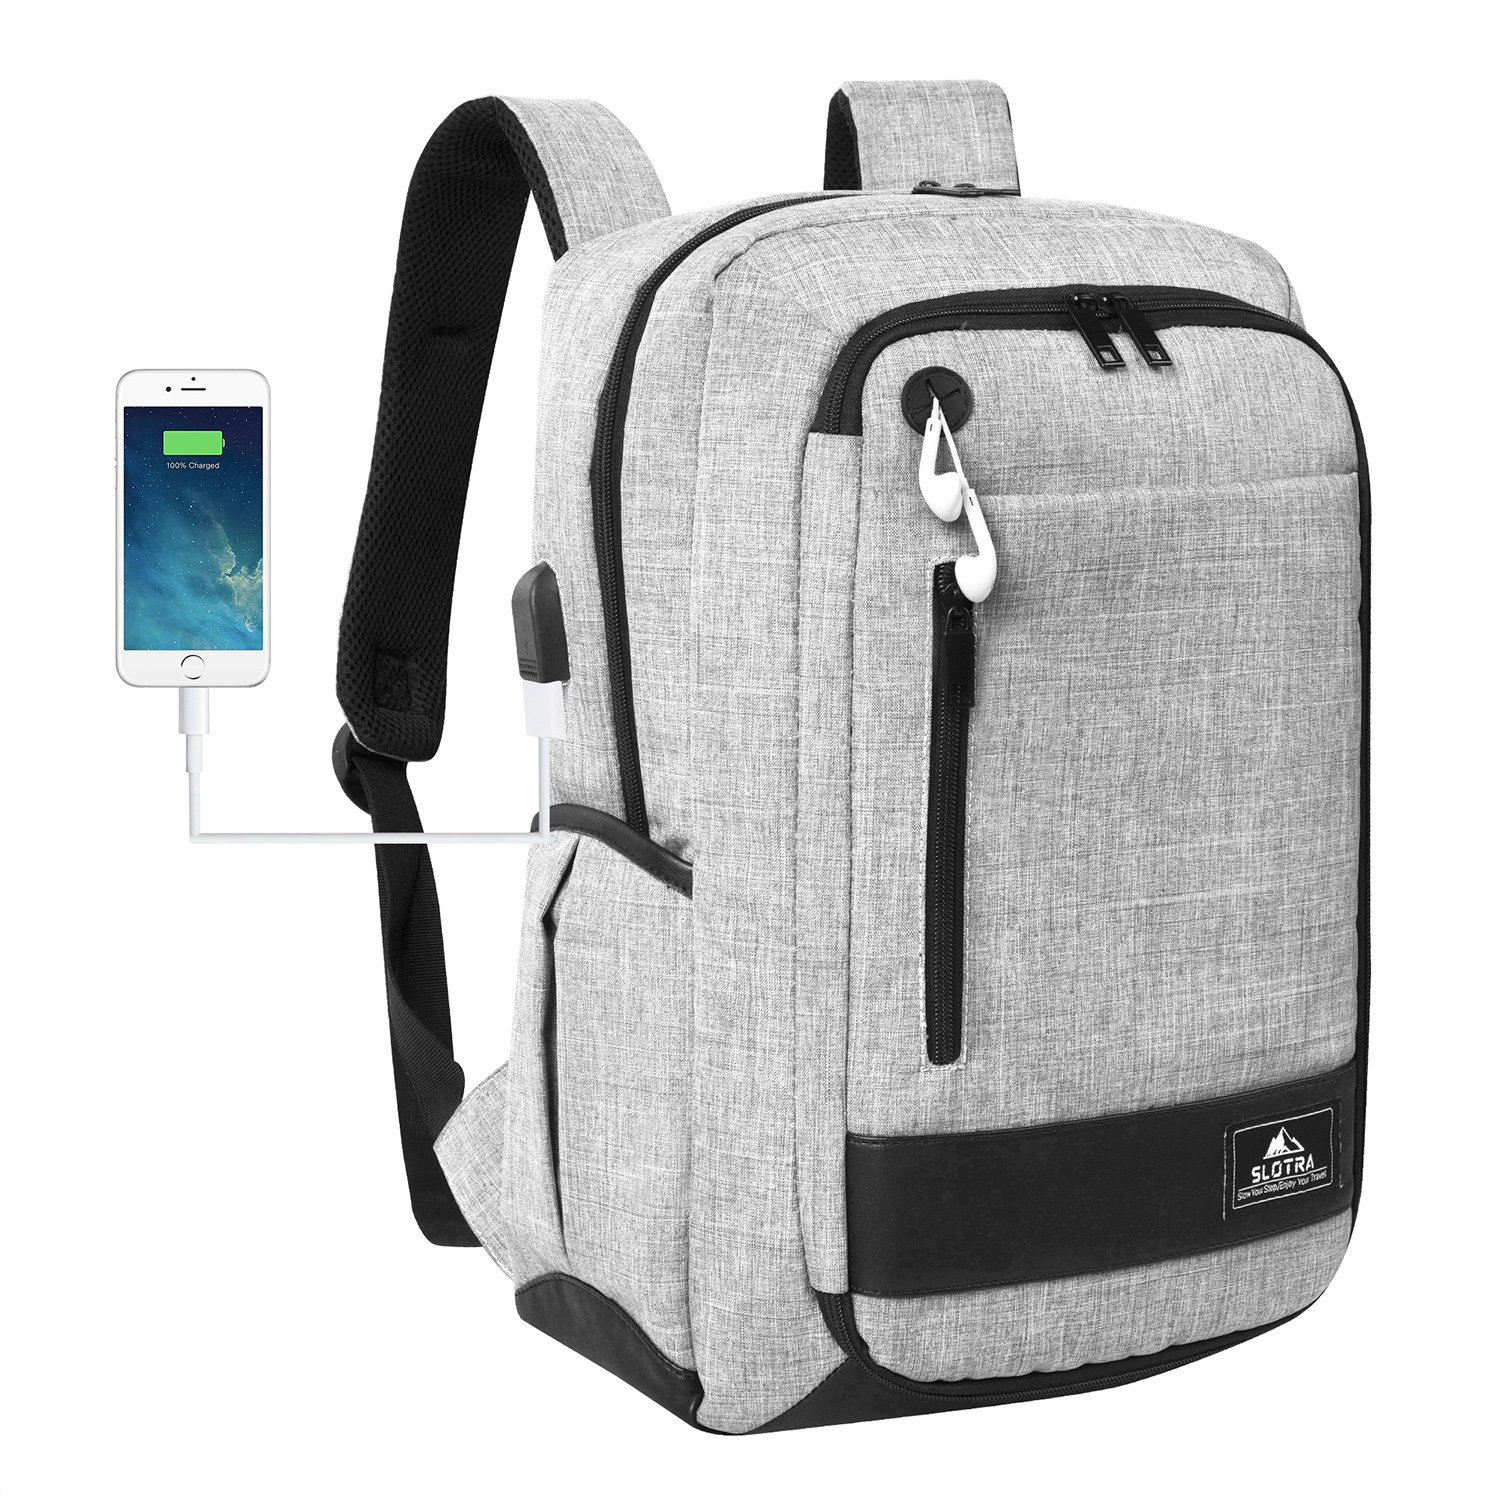 SLOTRA Laptop Backpack with USB for Men Women Slim Lightweight Work Backpack Padded Laptop Compartment for 15 inch Laptop School Bag Grey